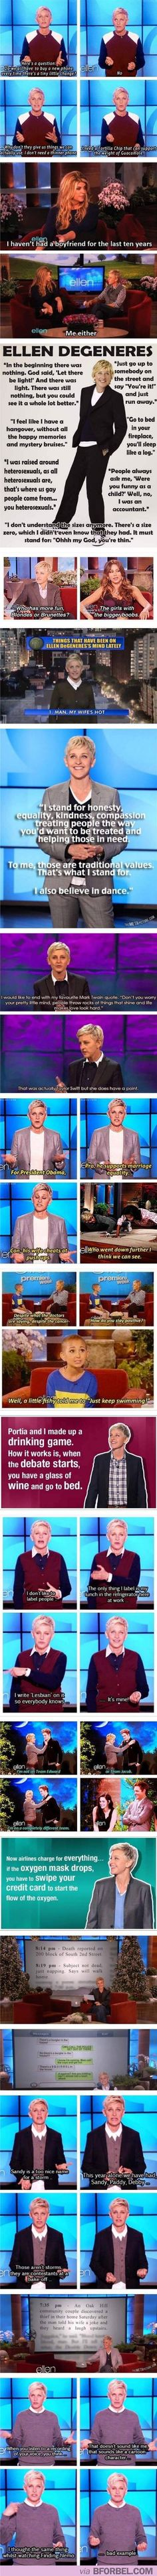 The Best Moments and Quotes from Ellen Degeneres